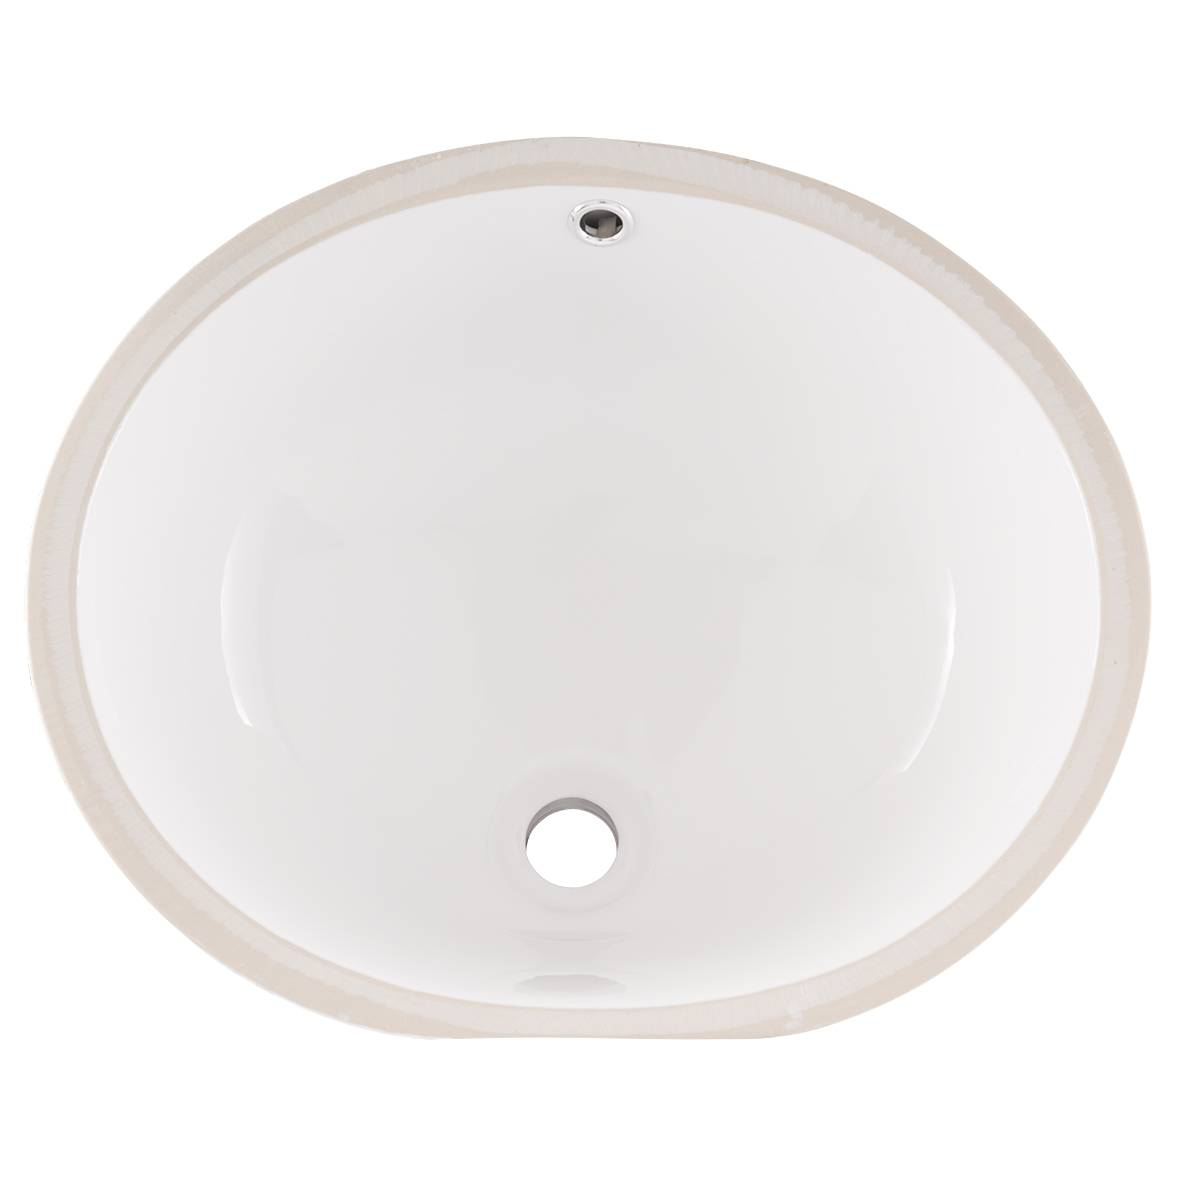 Vanity White Oval Porcelain